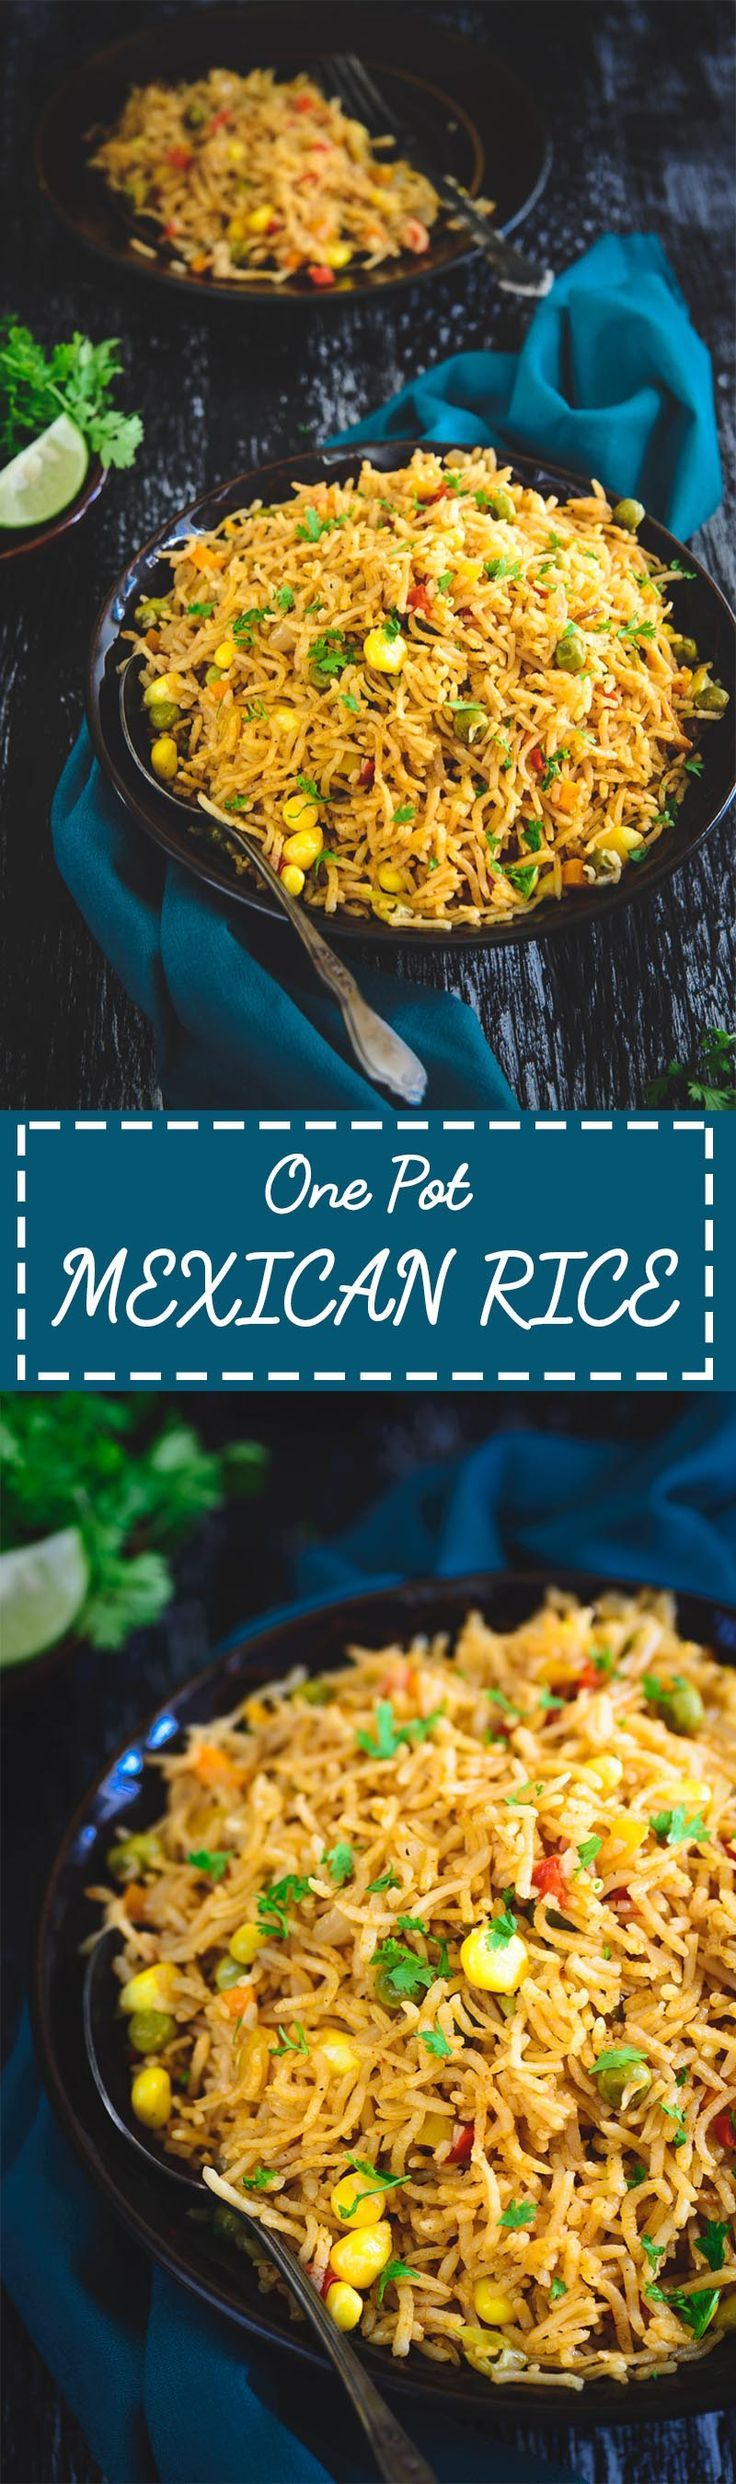 One Pot Mexican Rice is a delicious rice based dish. Full of vegetables and other healthy ingredients, this is fantastic to make for family meals. #Mexican #Rice #Dinner #Recipe